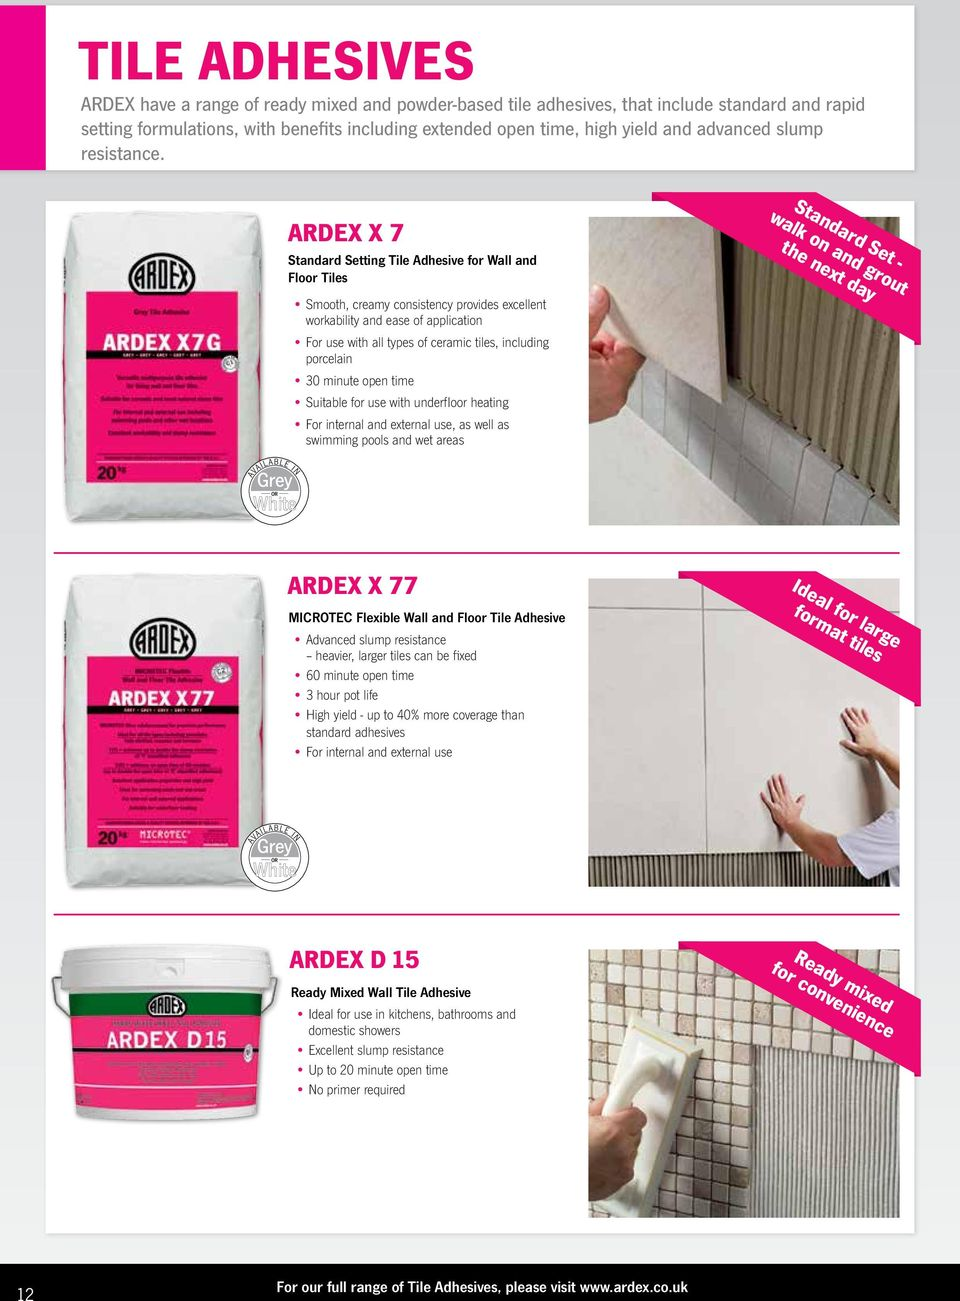 ARDEX X 7 Standard Setting Tile Adhesive for Wall and Floor Tiles Standard Set - walk on and grout the next day Smooth, creamy consistency provides excellent workability and ease of application For